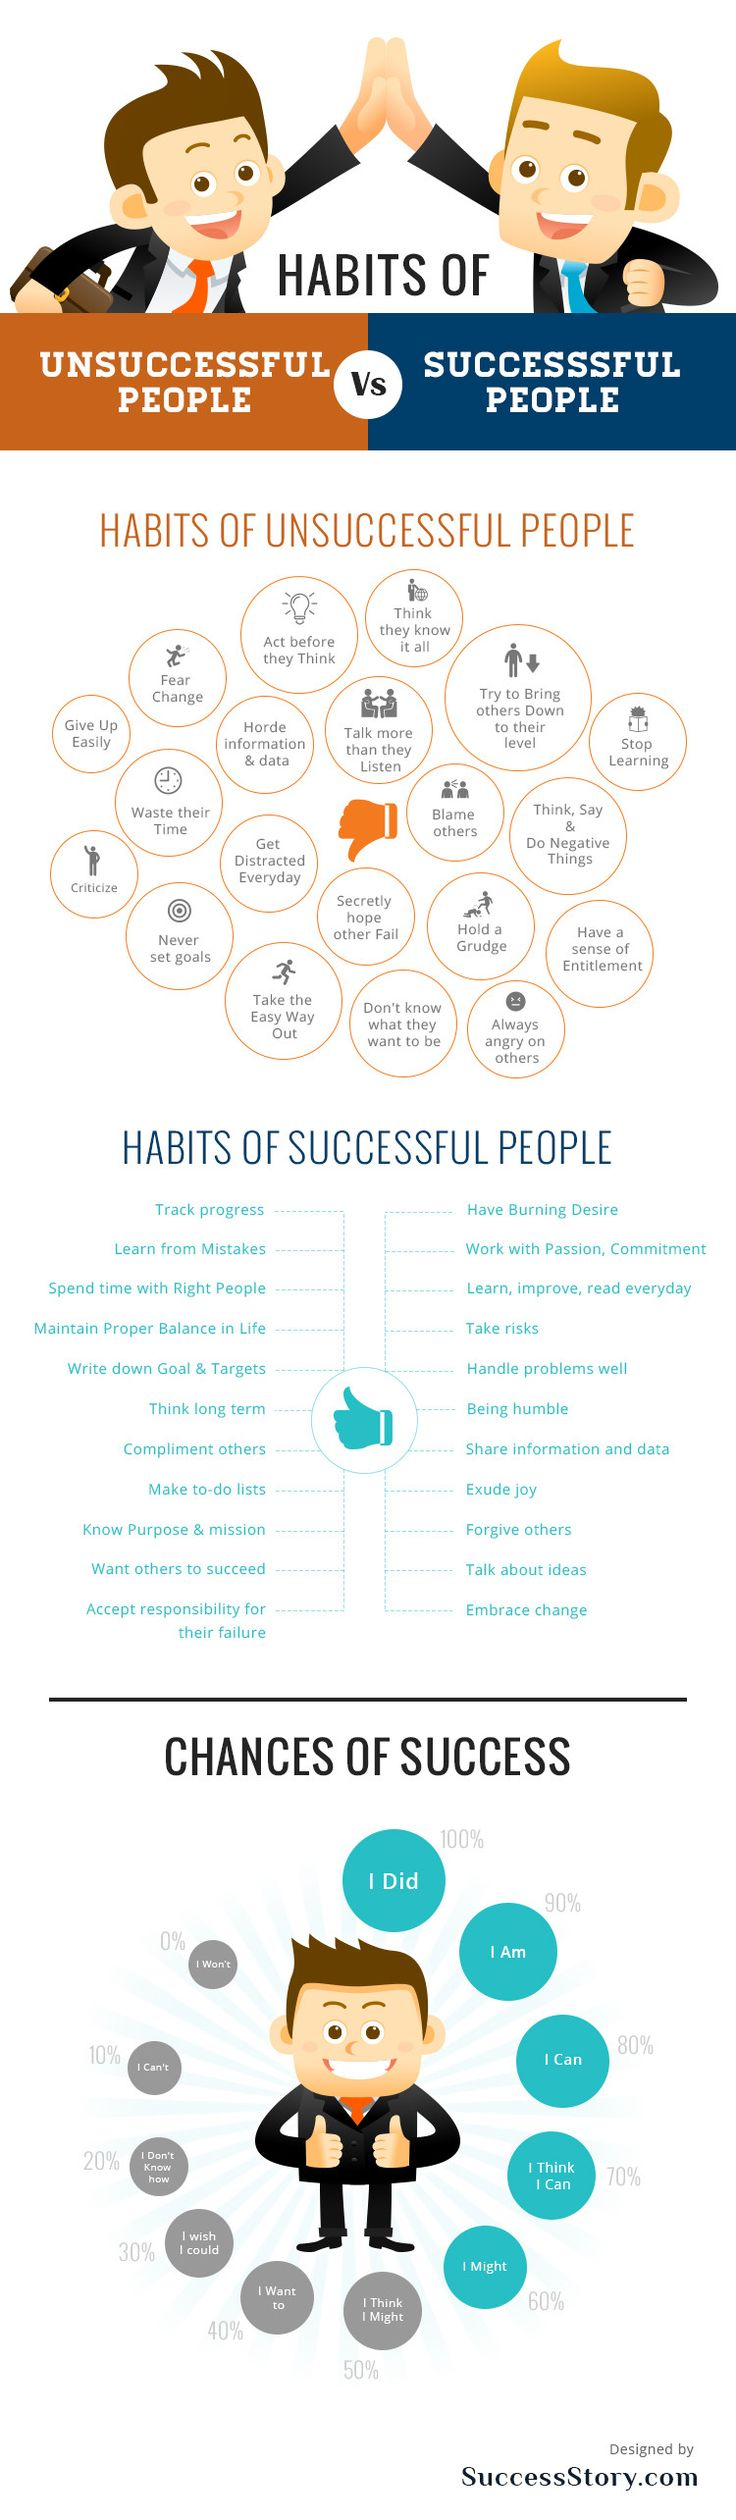 Habits You Can Use To Be Successful (And Some To Avoid)